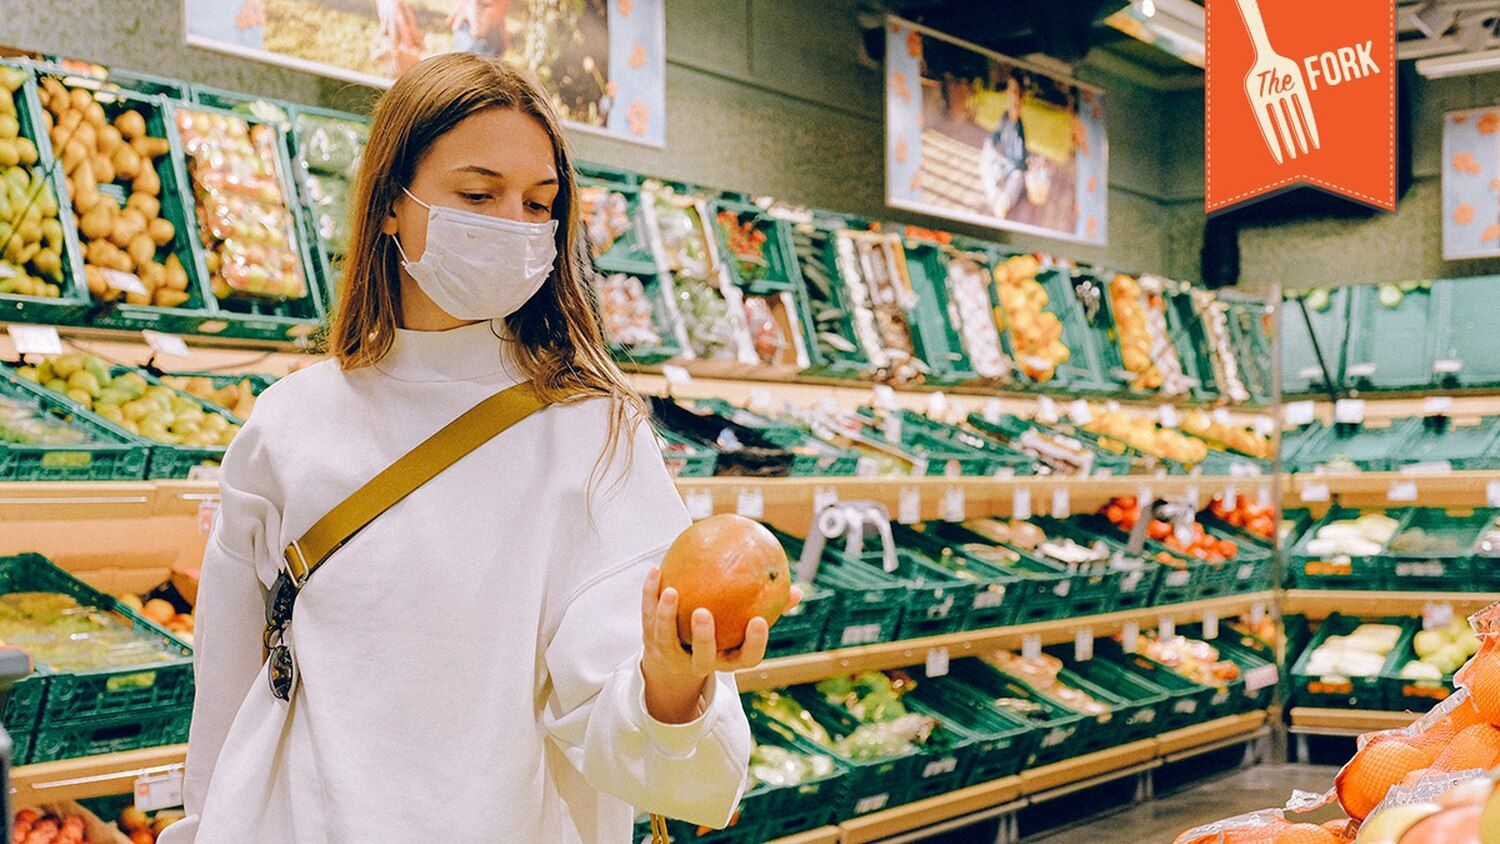 UFCW: Grocers Should Kick Out Maskless Shoppers